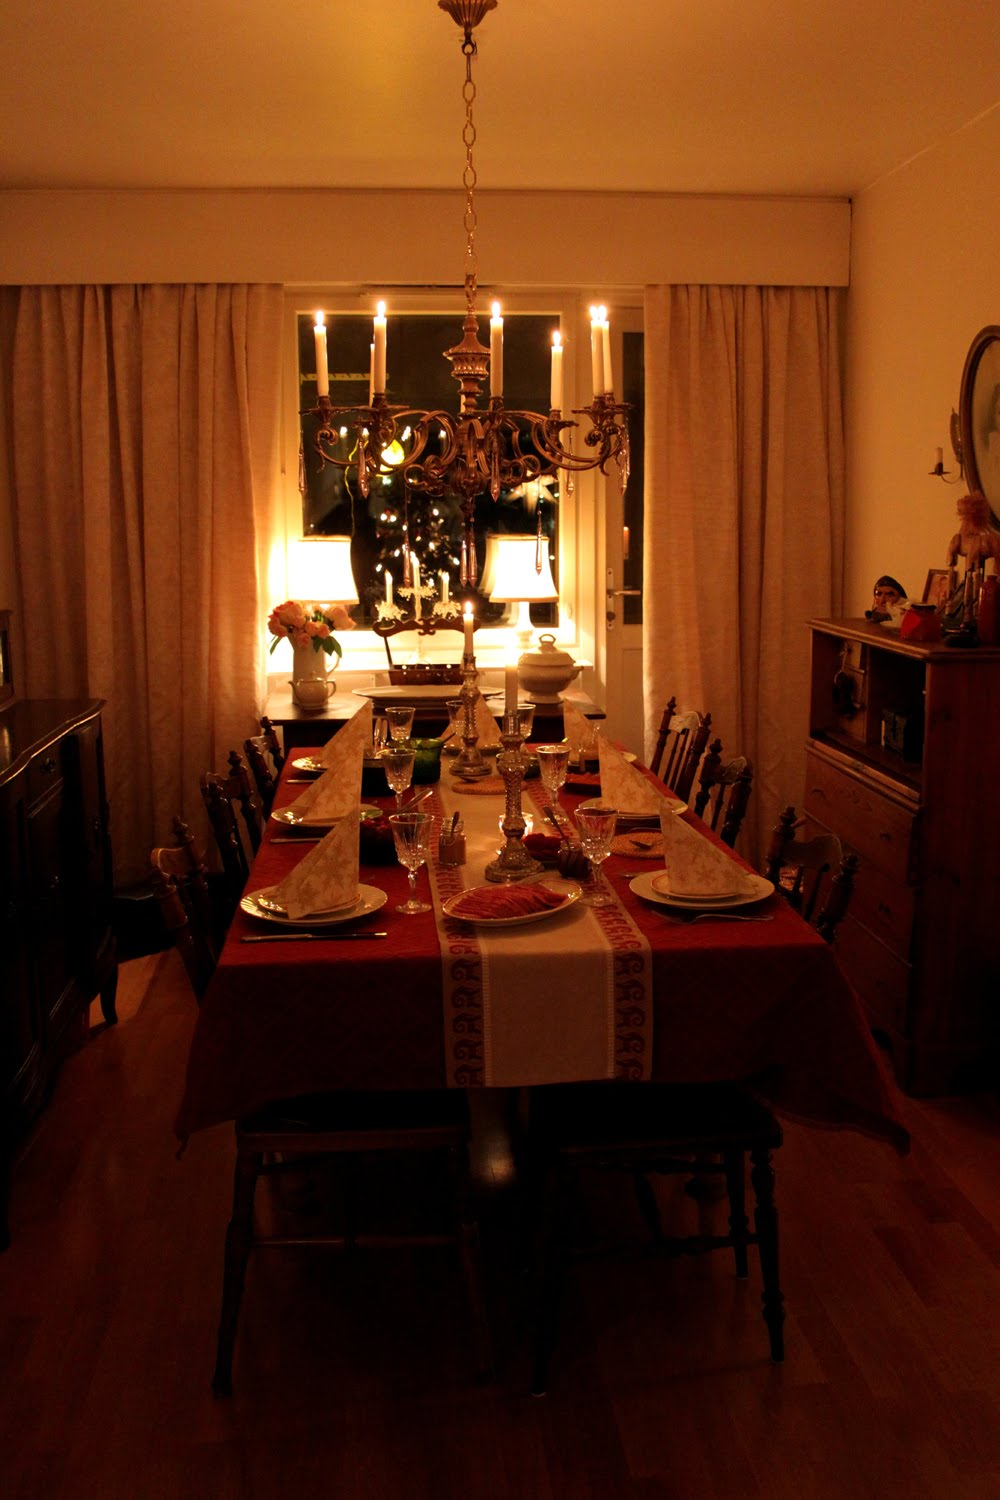 Cristmas in the Diningroom